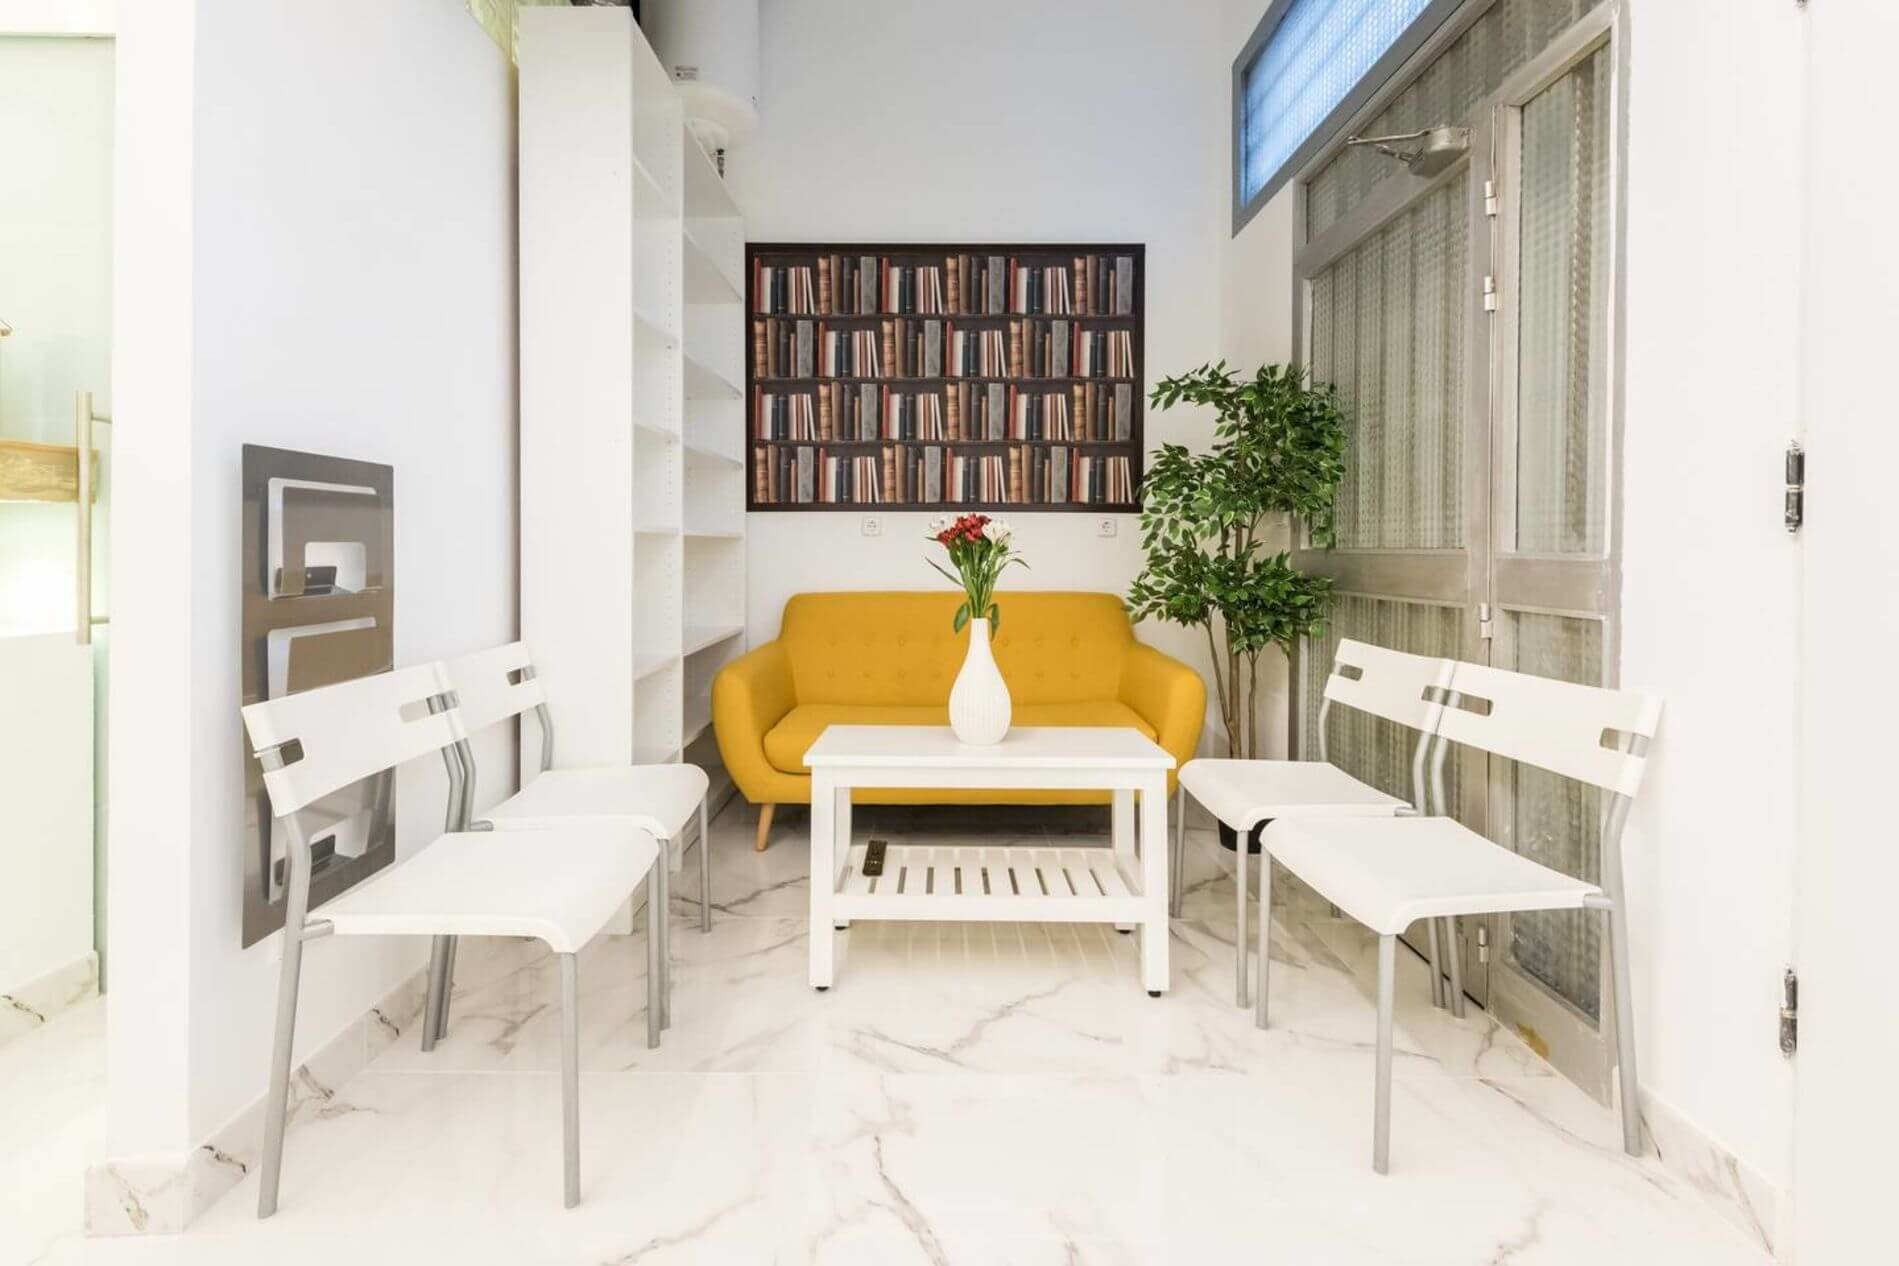 Serviced loft apartment in Madrid with Instant Booking option